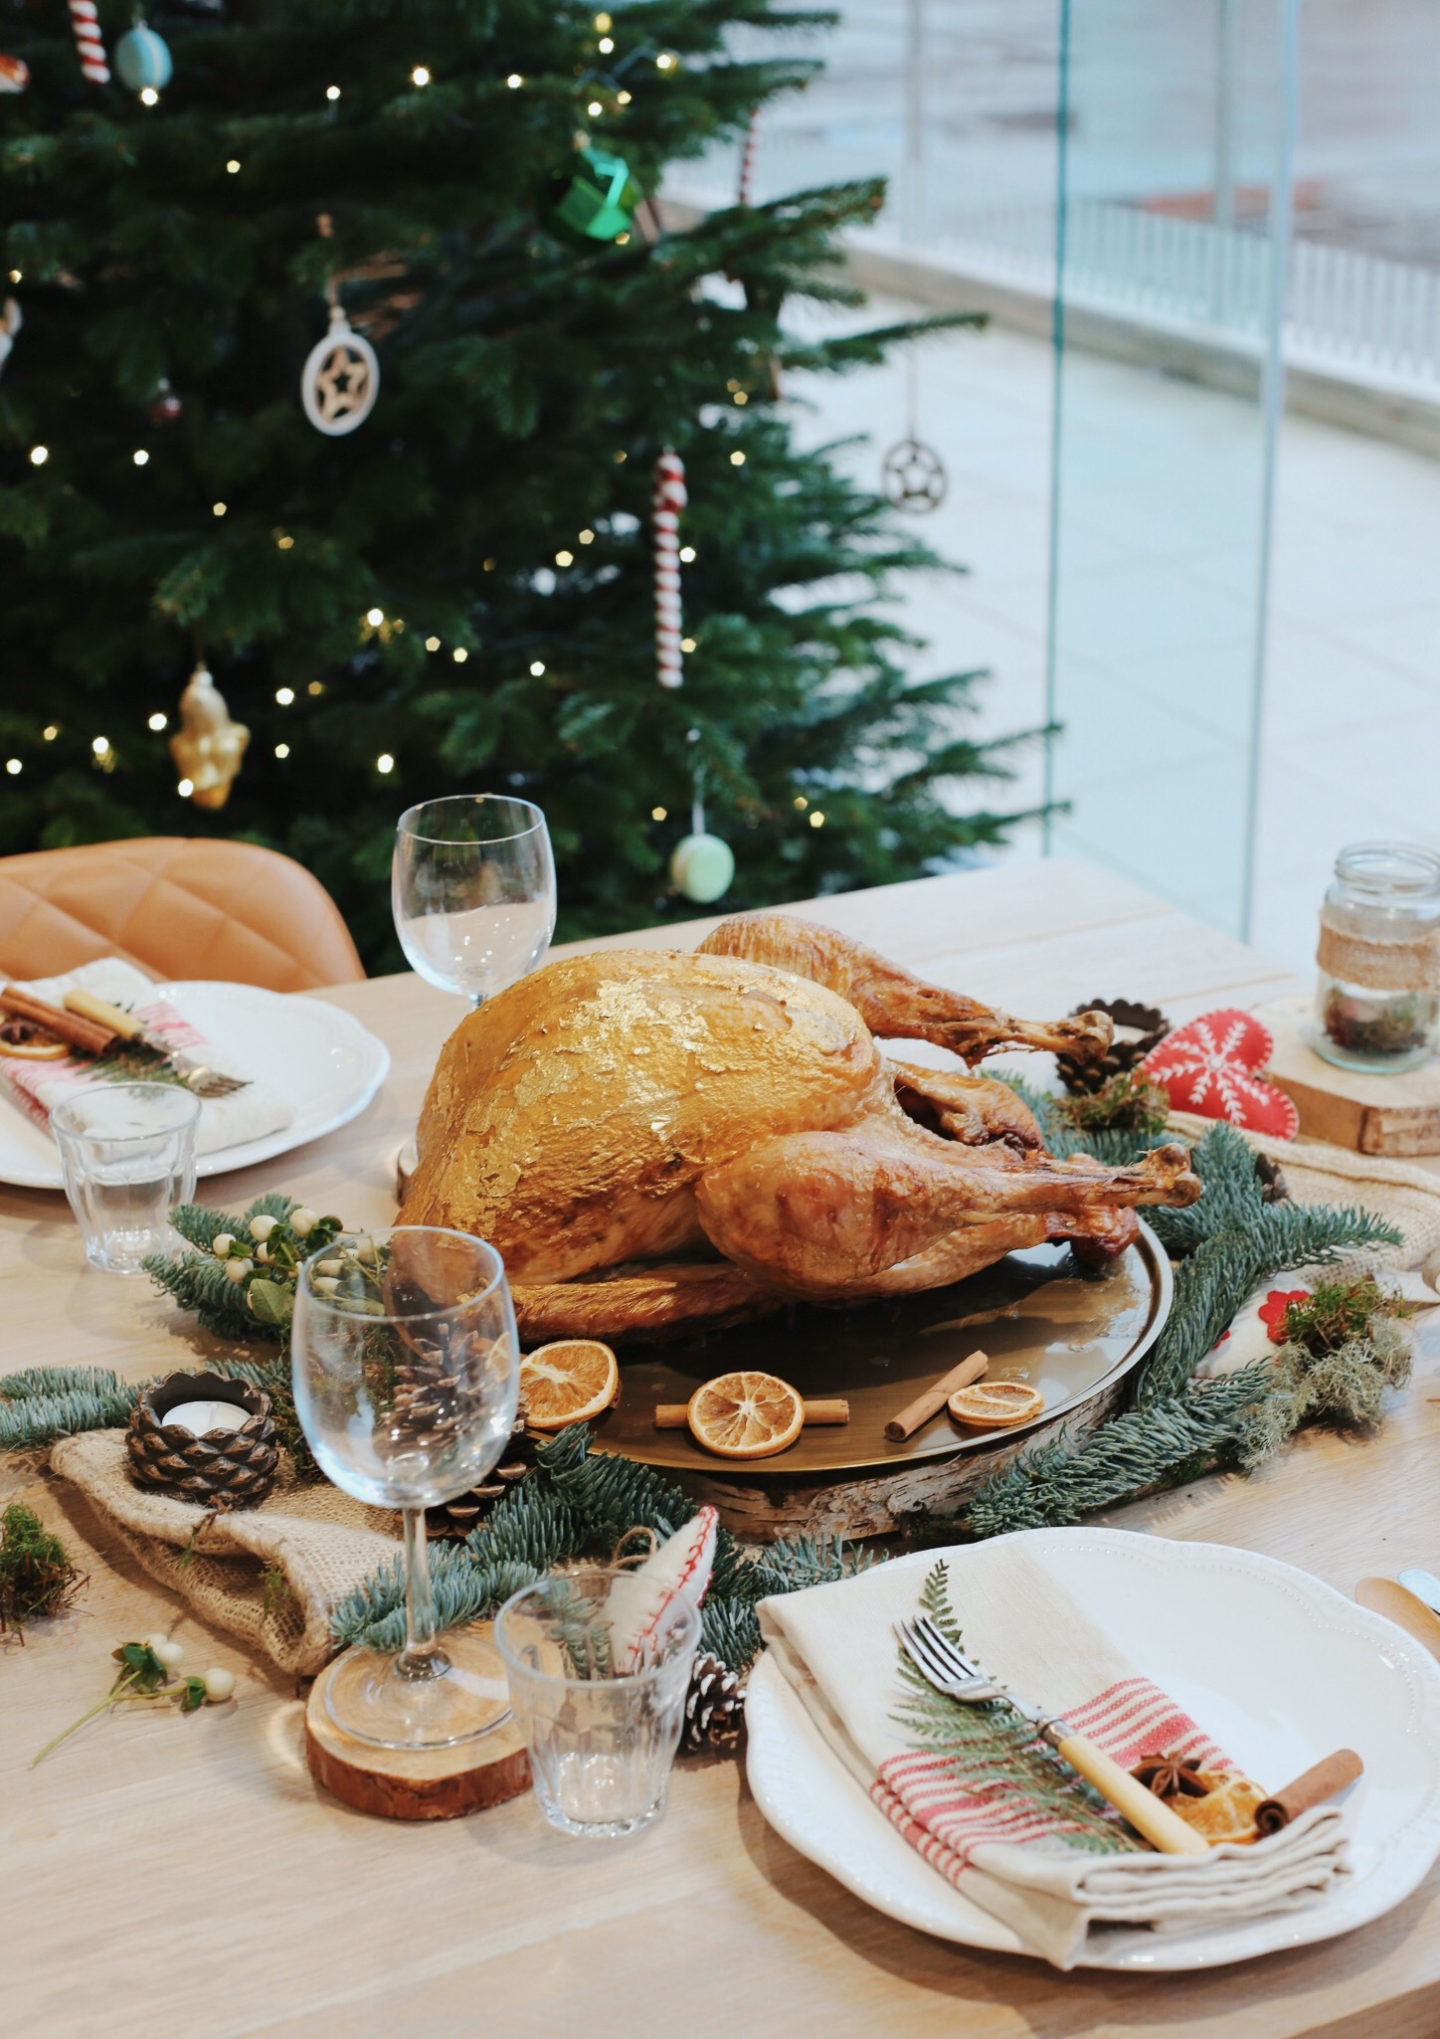 Getting into the festive spirit with Iceland Christmas Food - Luxury Gilded Turkey with a Mustard and Honey Glaze